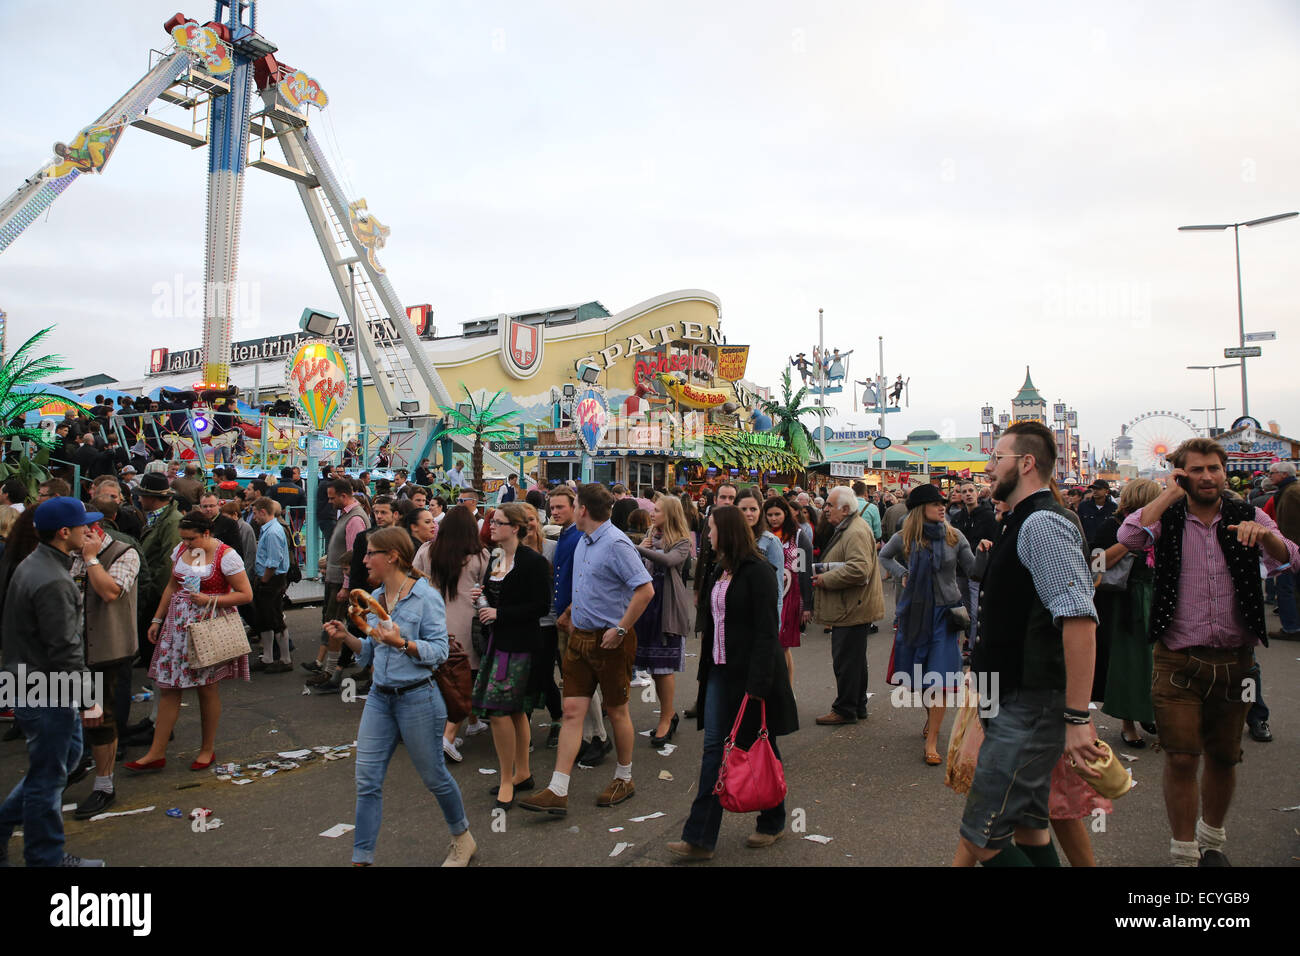 people oktoberfest ground crowd busy congested - Stock Image